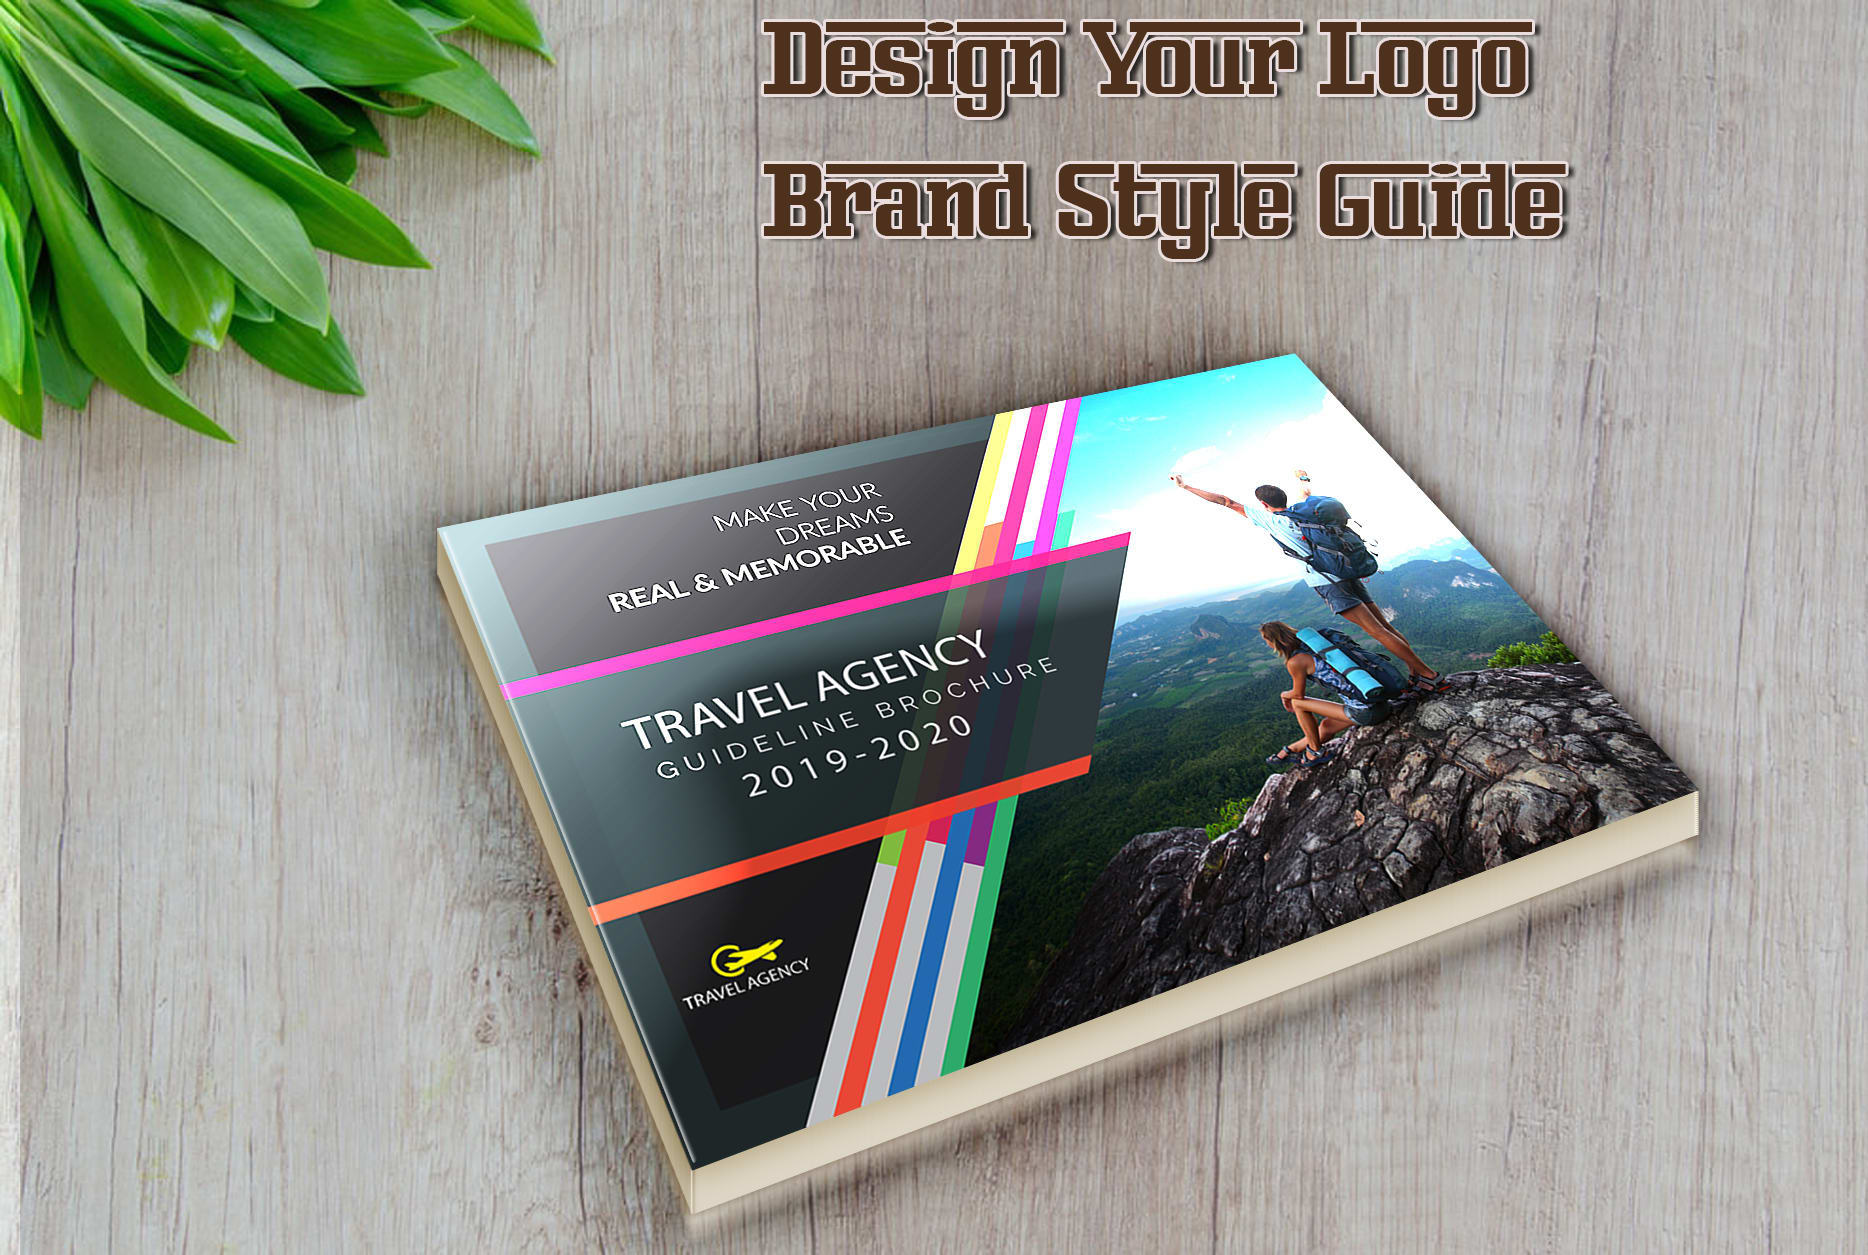 I will design your logo and brand style guide quickly - Basic